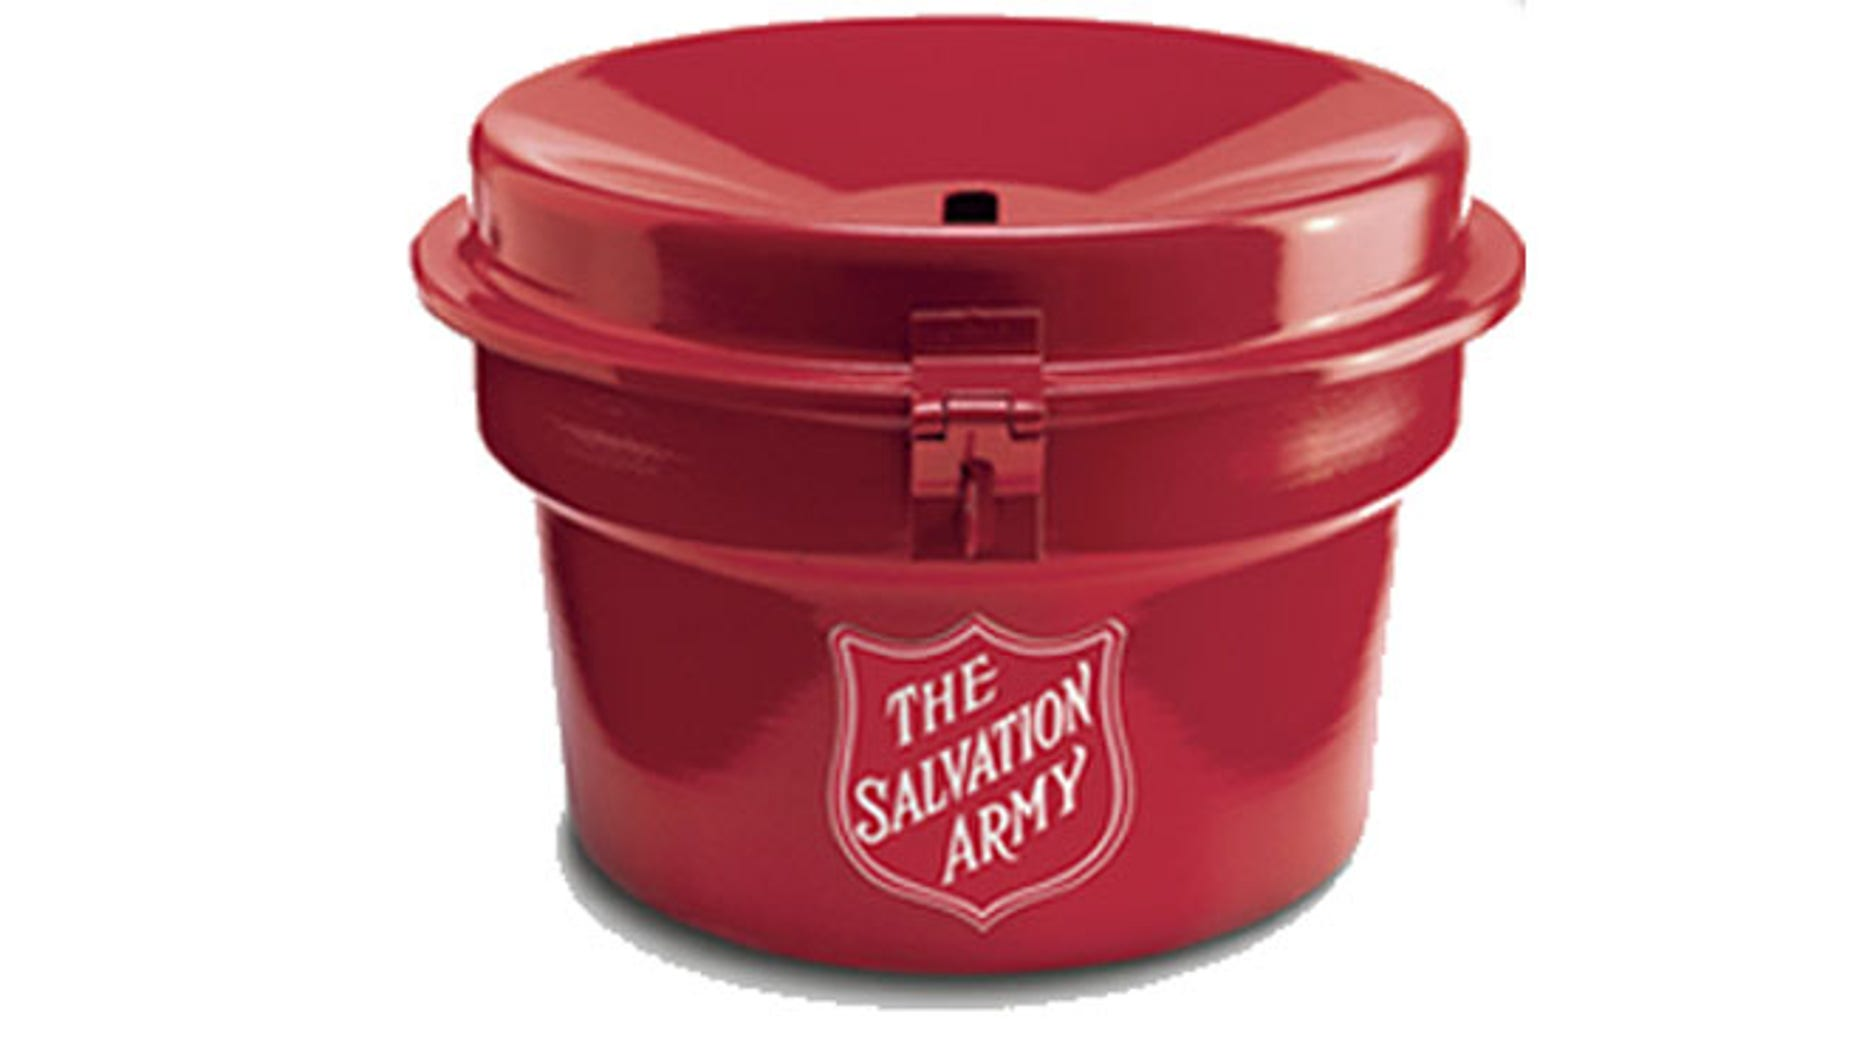 A Salvation Army worker was helping a grandmother walk through the doors at a mall when a thief made off with his kettle.